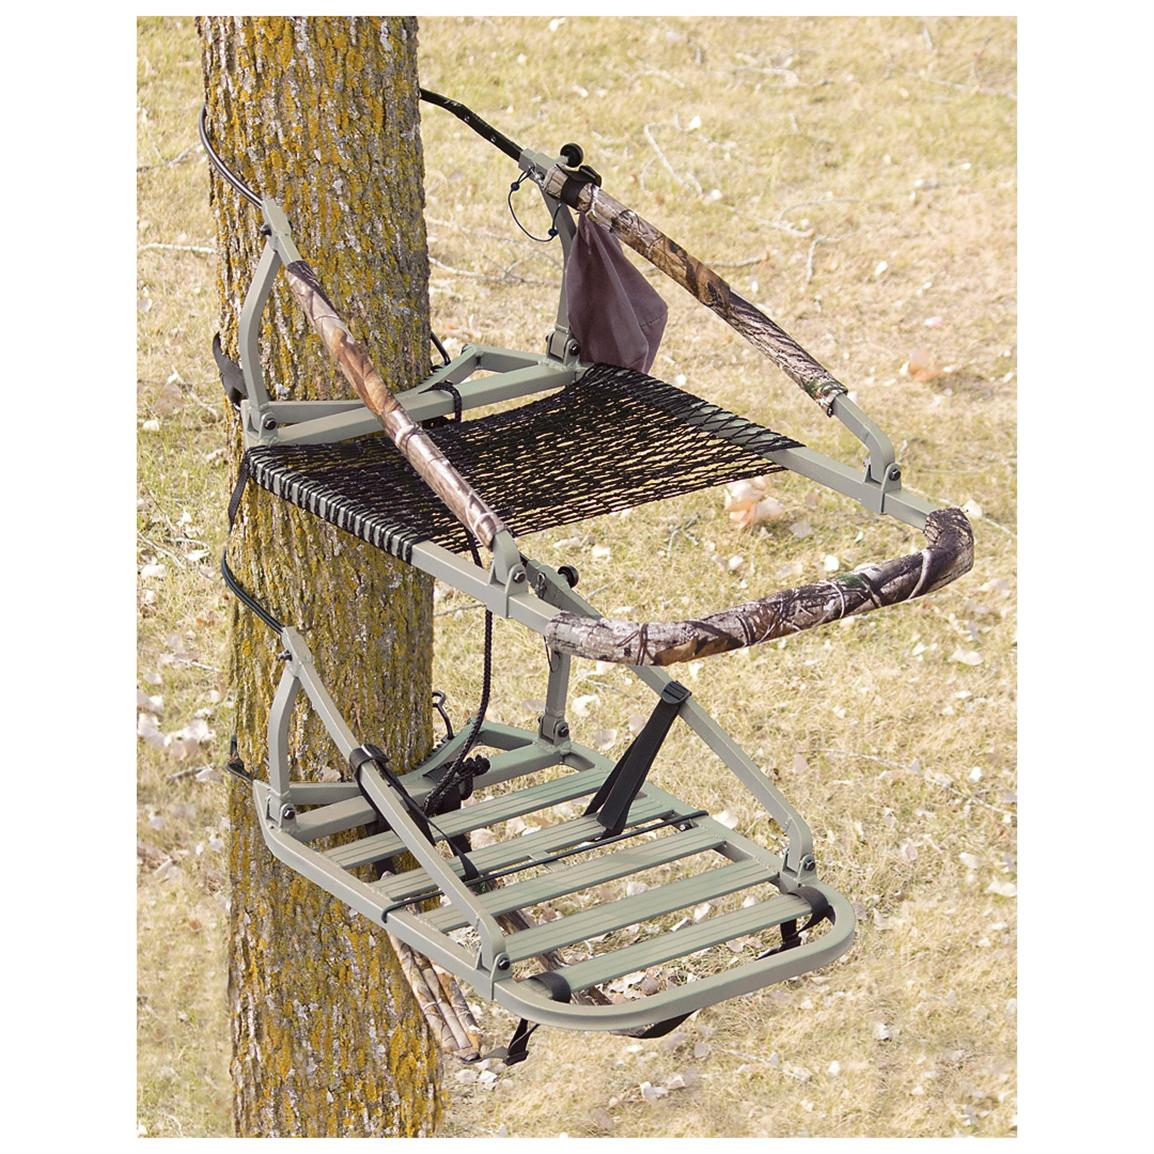 API Outdoors The Marksman Climber Aluminum Tree Stand • Knob adjusts seat and platform for level hunting  300-lb. capacity